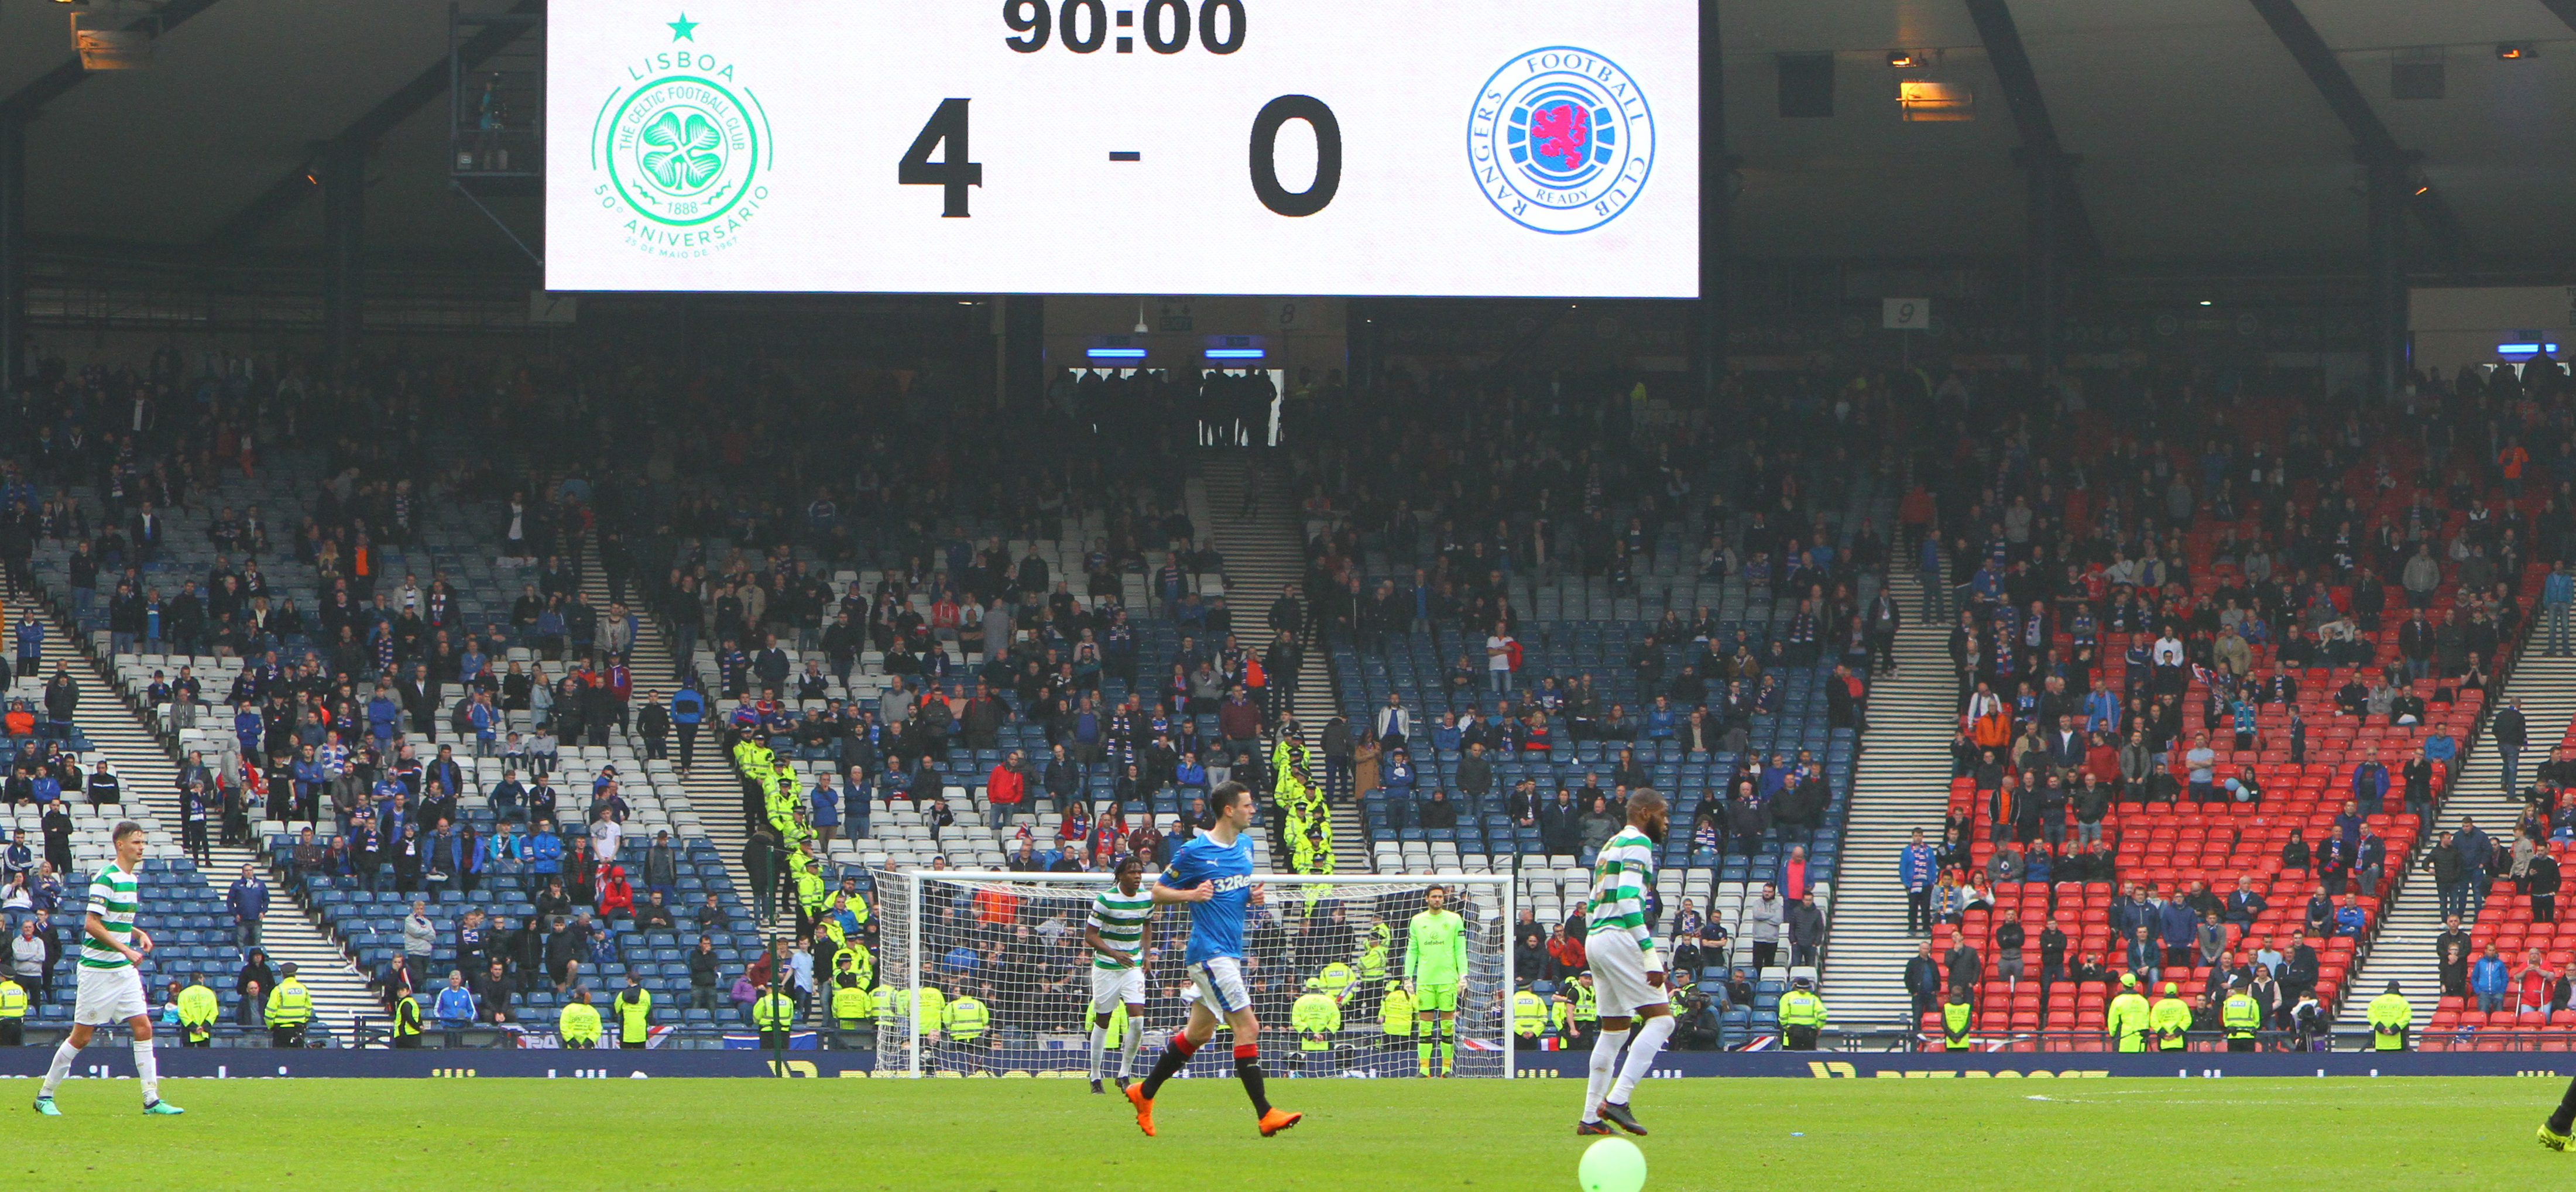 Sevco: after the Brawl Was Over…